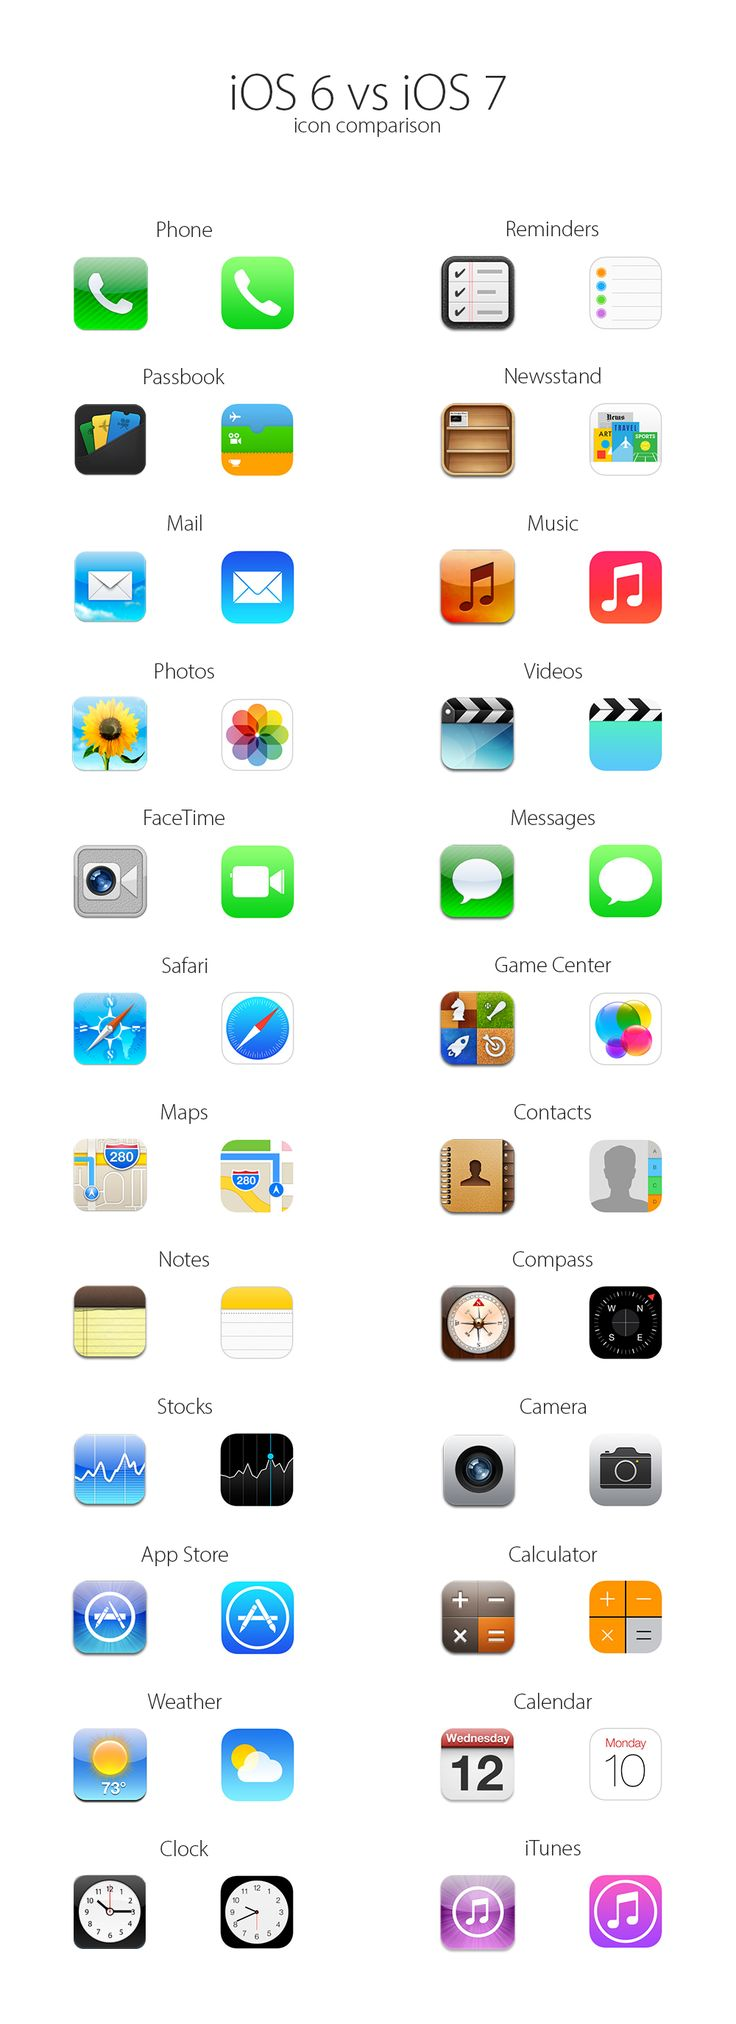 iOS6 vs iOS7 an icon comparison.